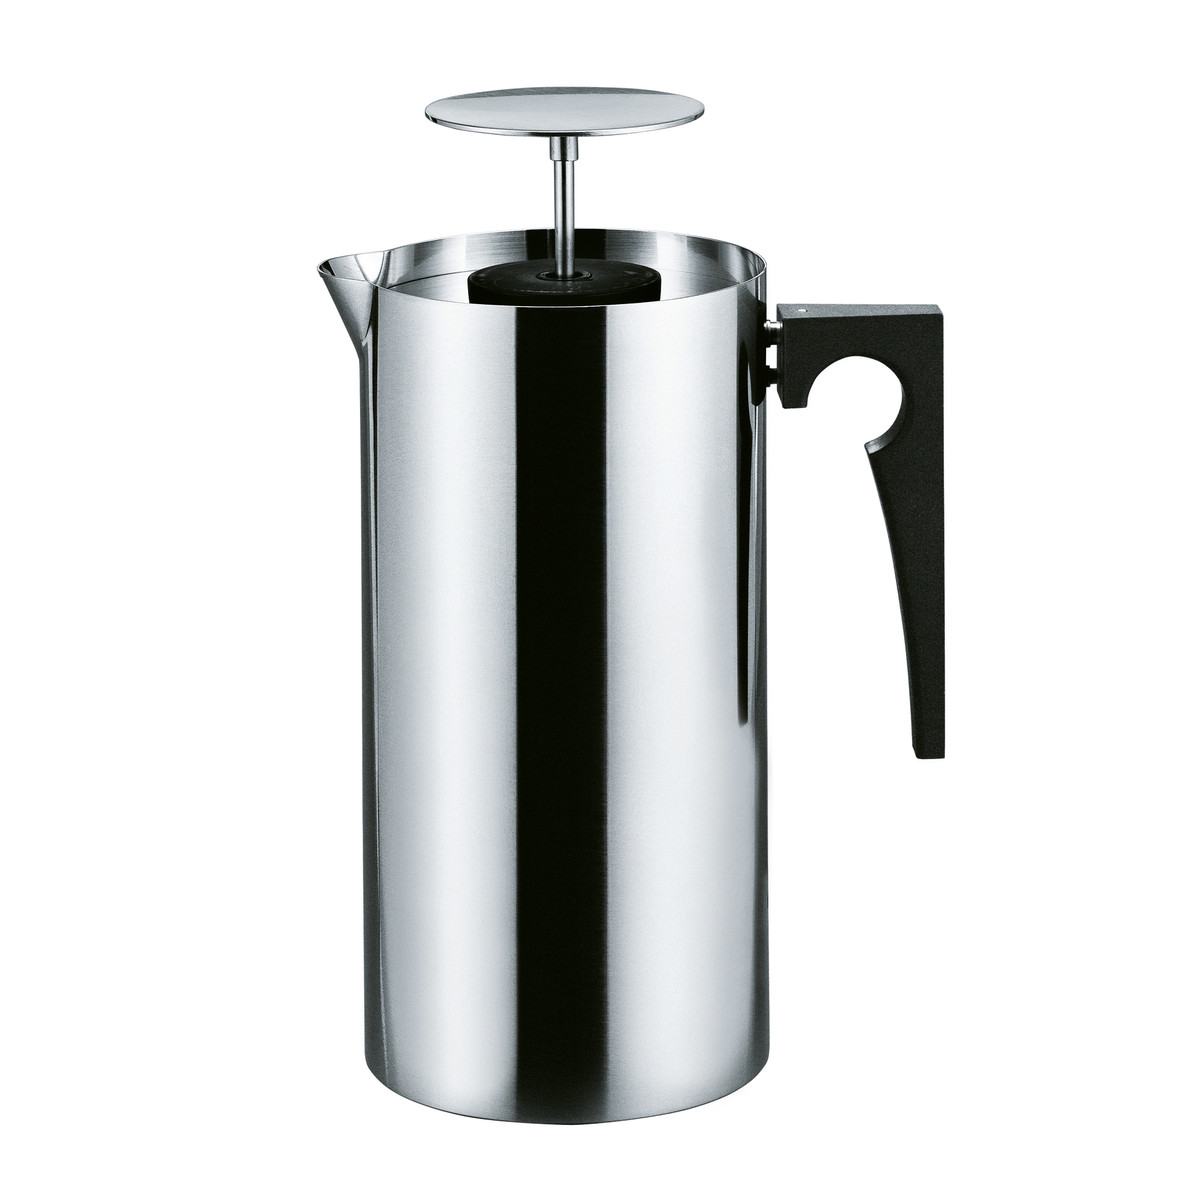 Stelton - Kitchenware Cylinda press coffee maker in stainless steel